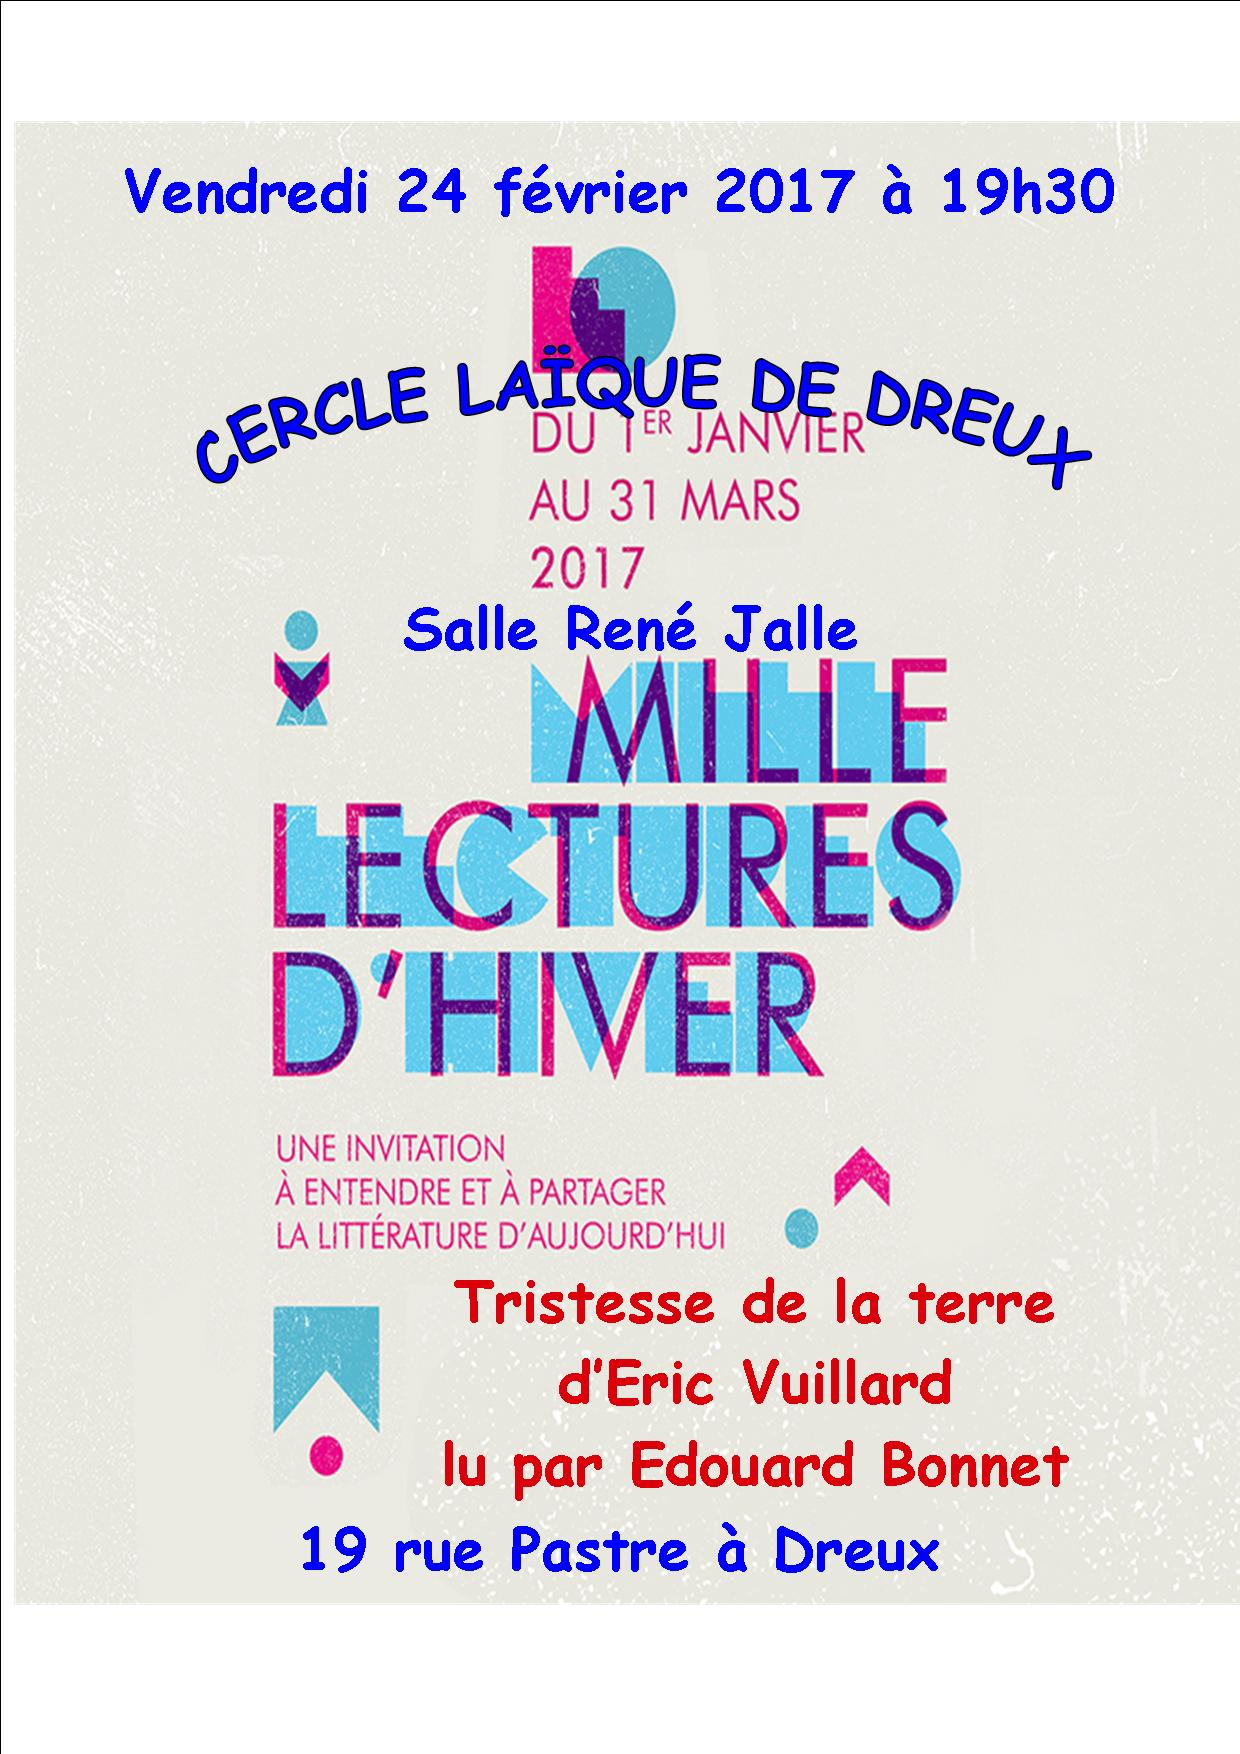 Mille lectures dhiver fv2017